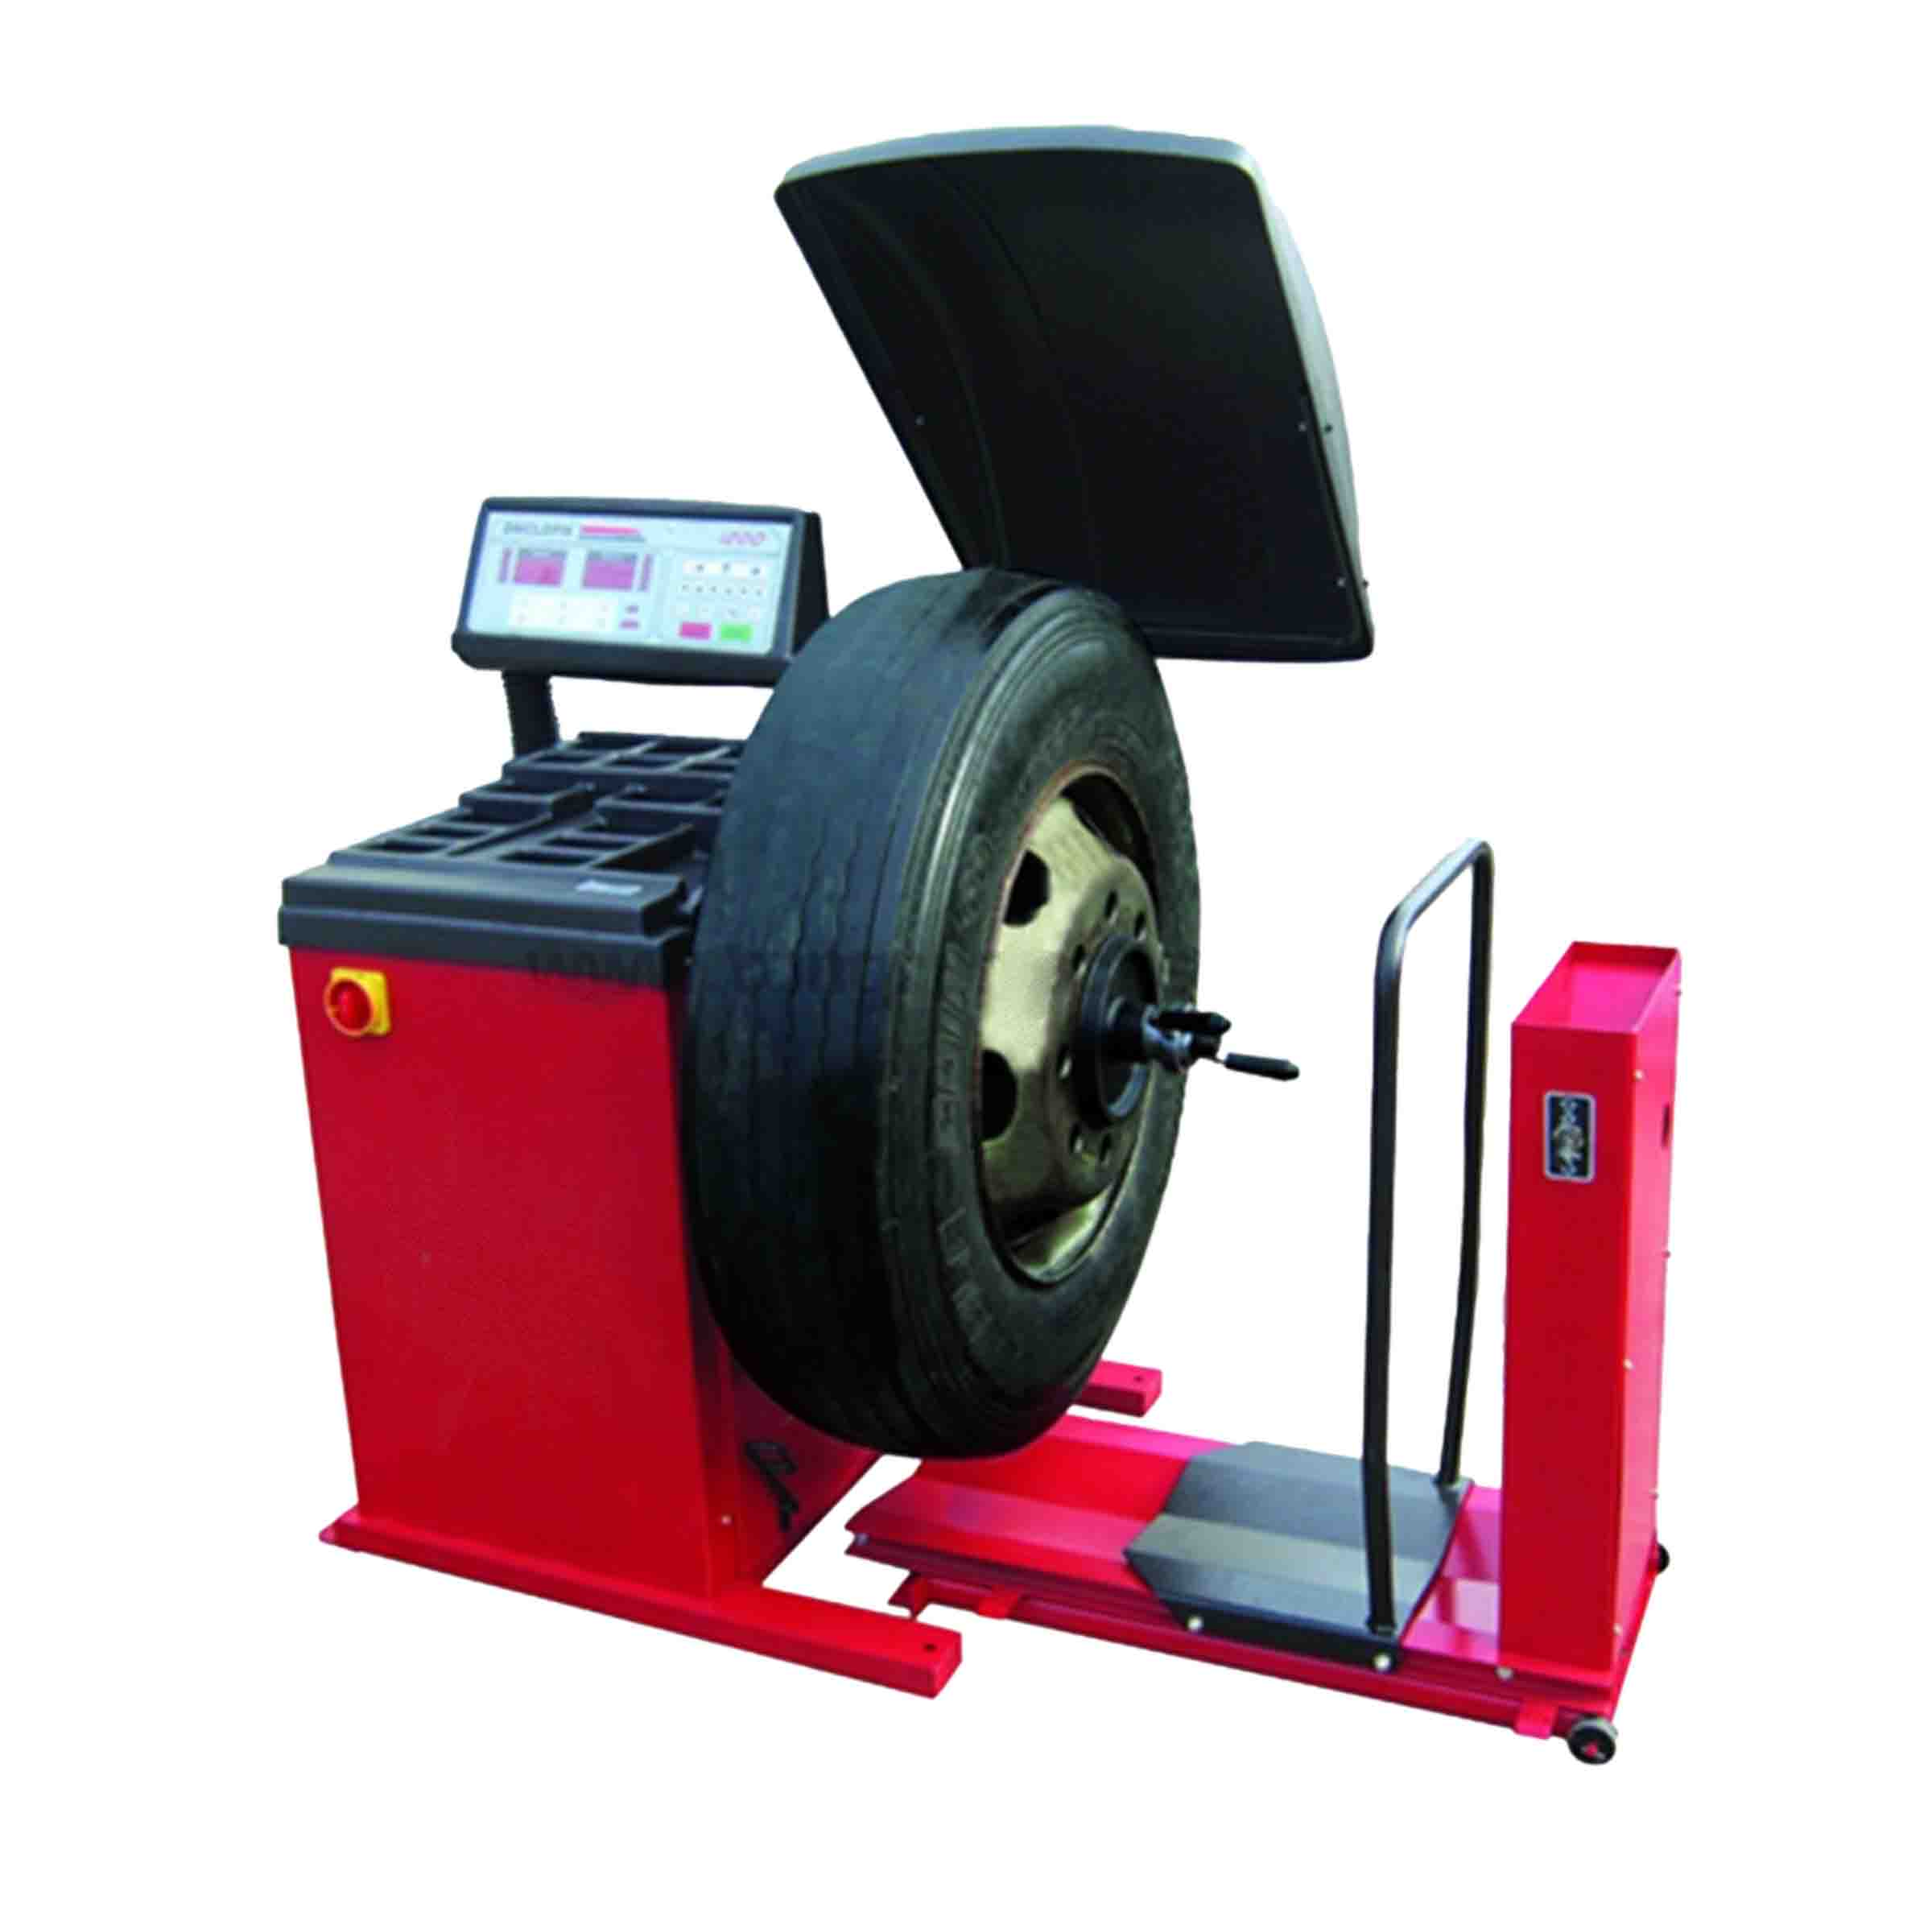 SPECIAL! CURRENT STOCK ONLY Big Red Truck Wheel Balancer